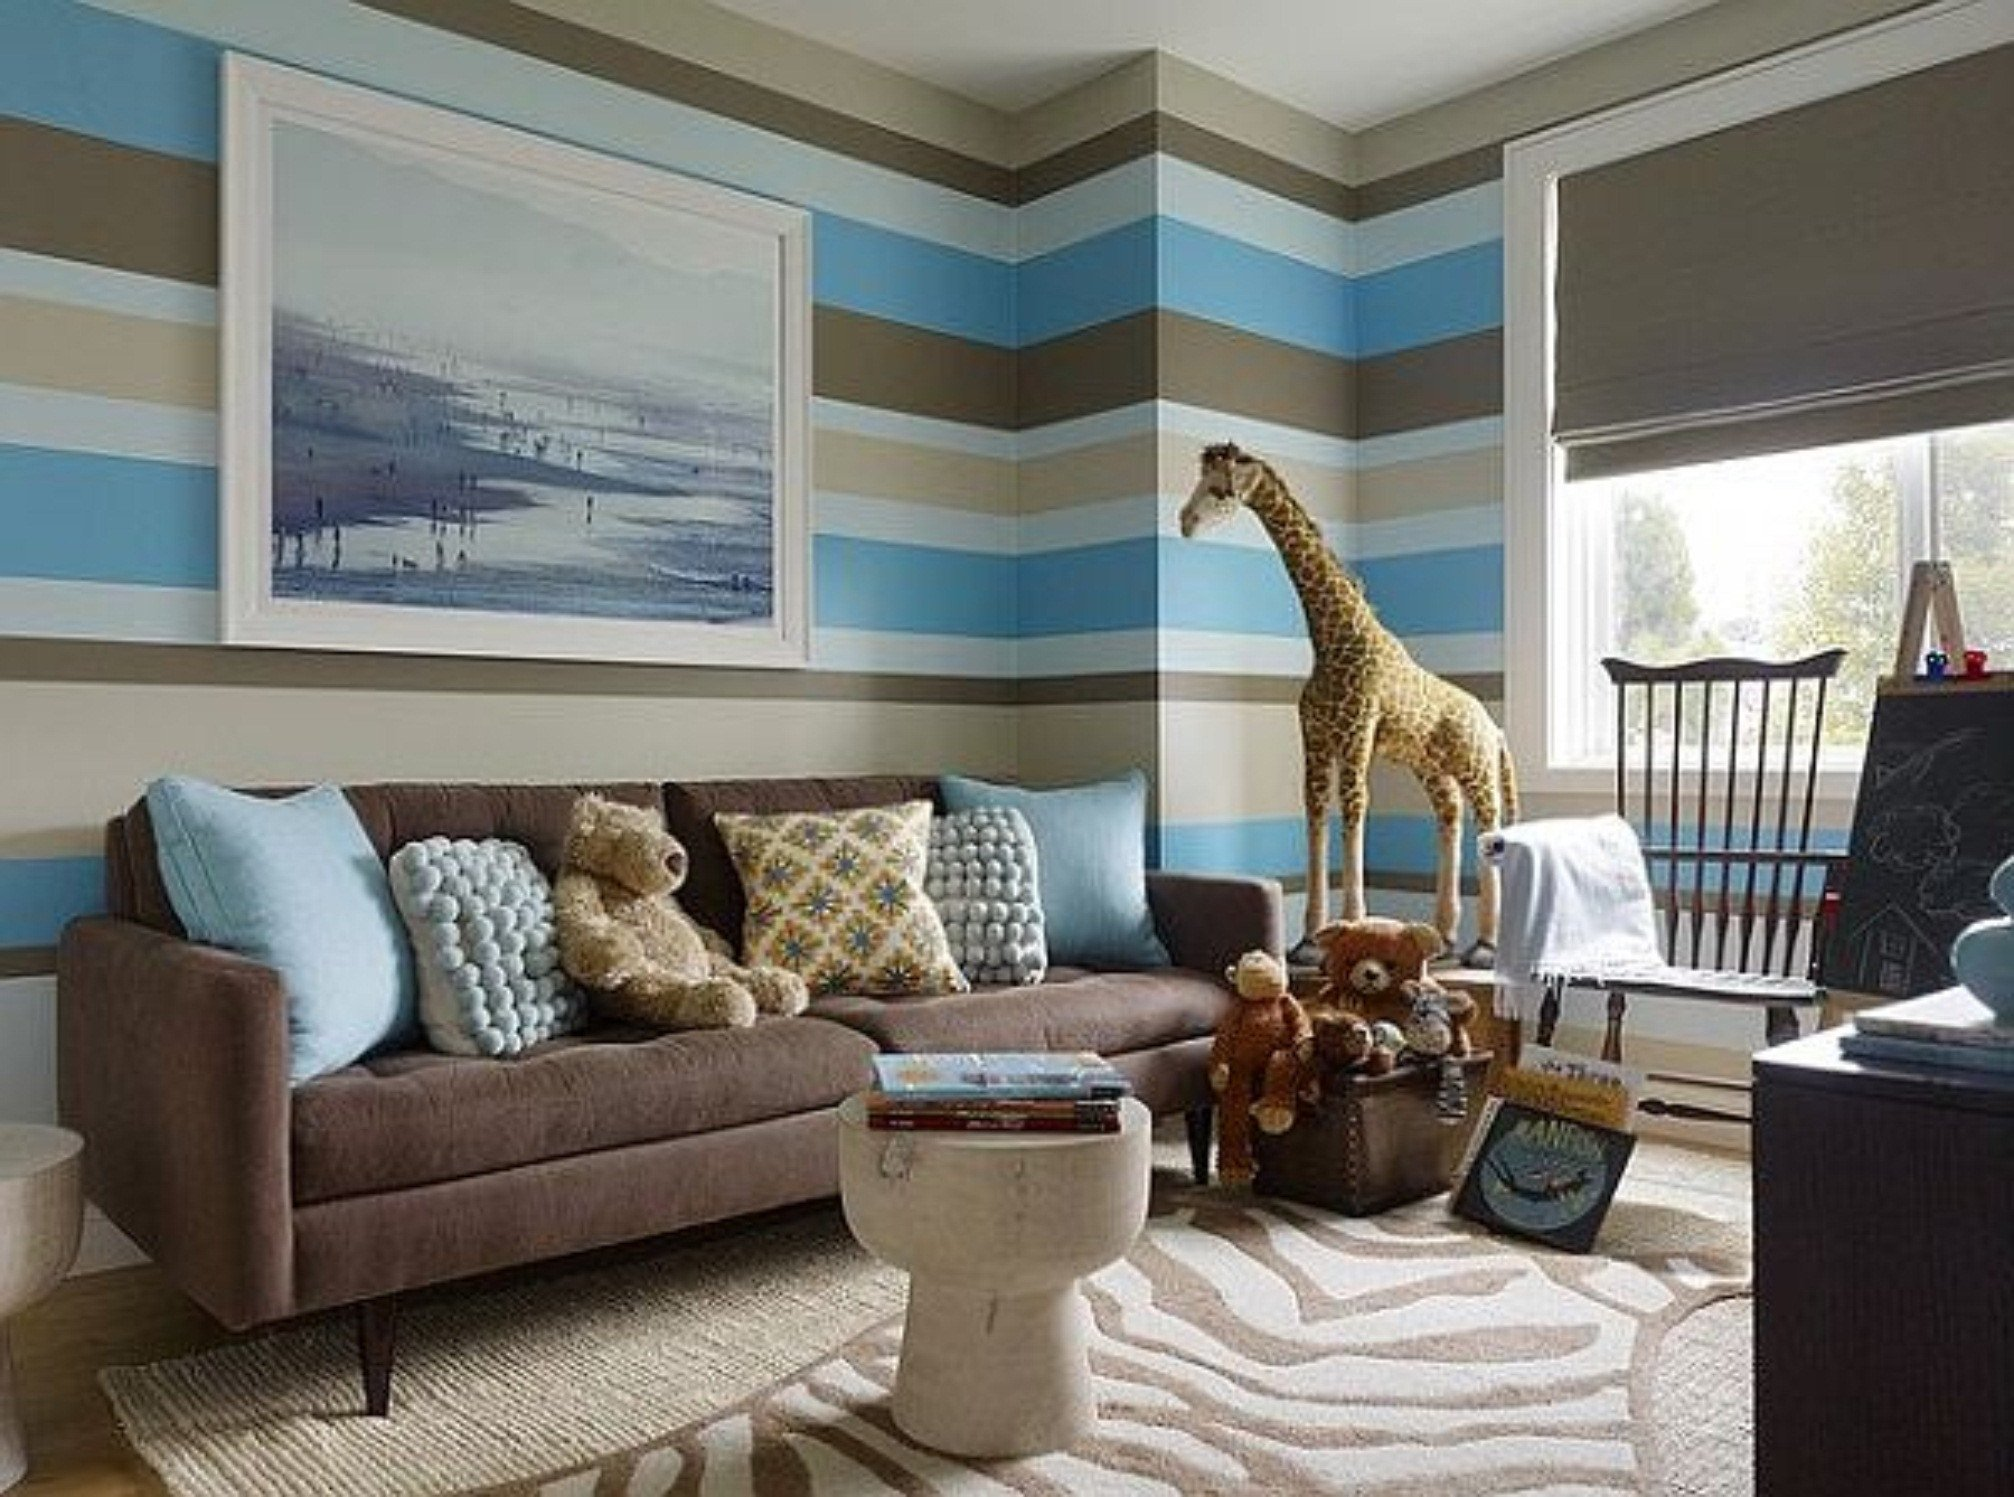 Small Living Room Paint Ideas Best Of Paint Ideas for Living Room with Narrow Space theydesign theydesign